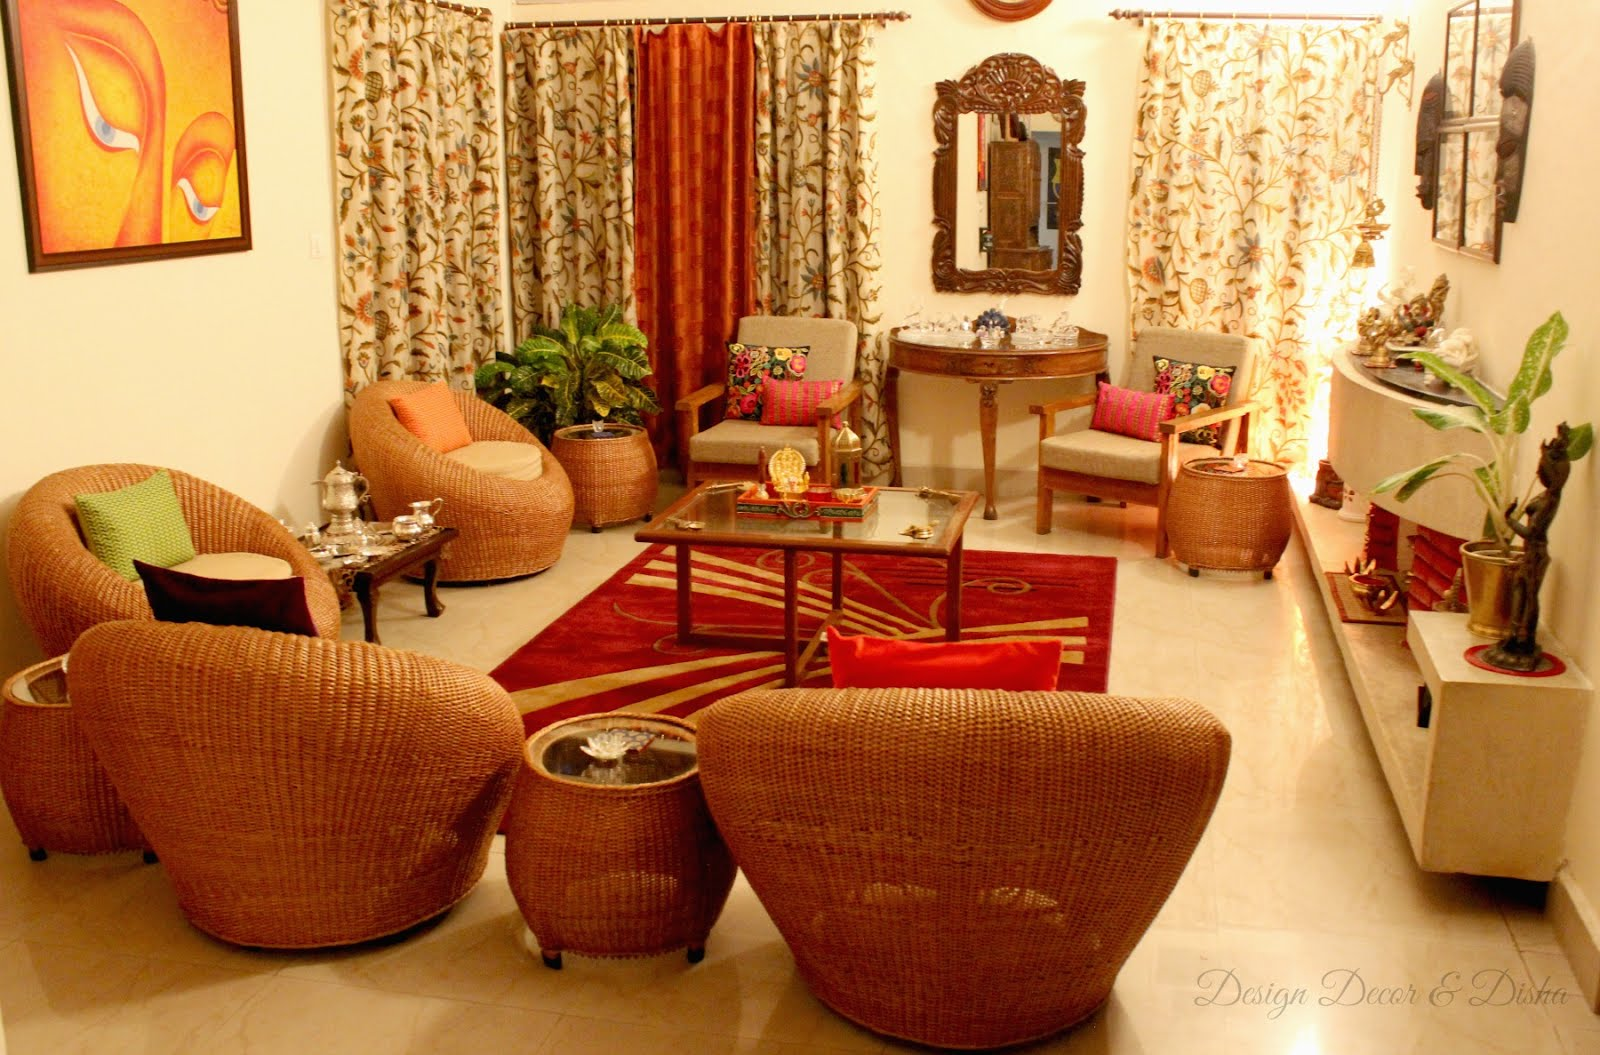 Design decor disha an indian design decor blog home for Home decorations india